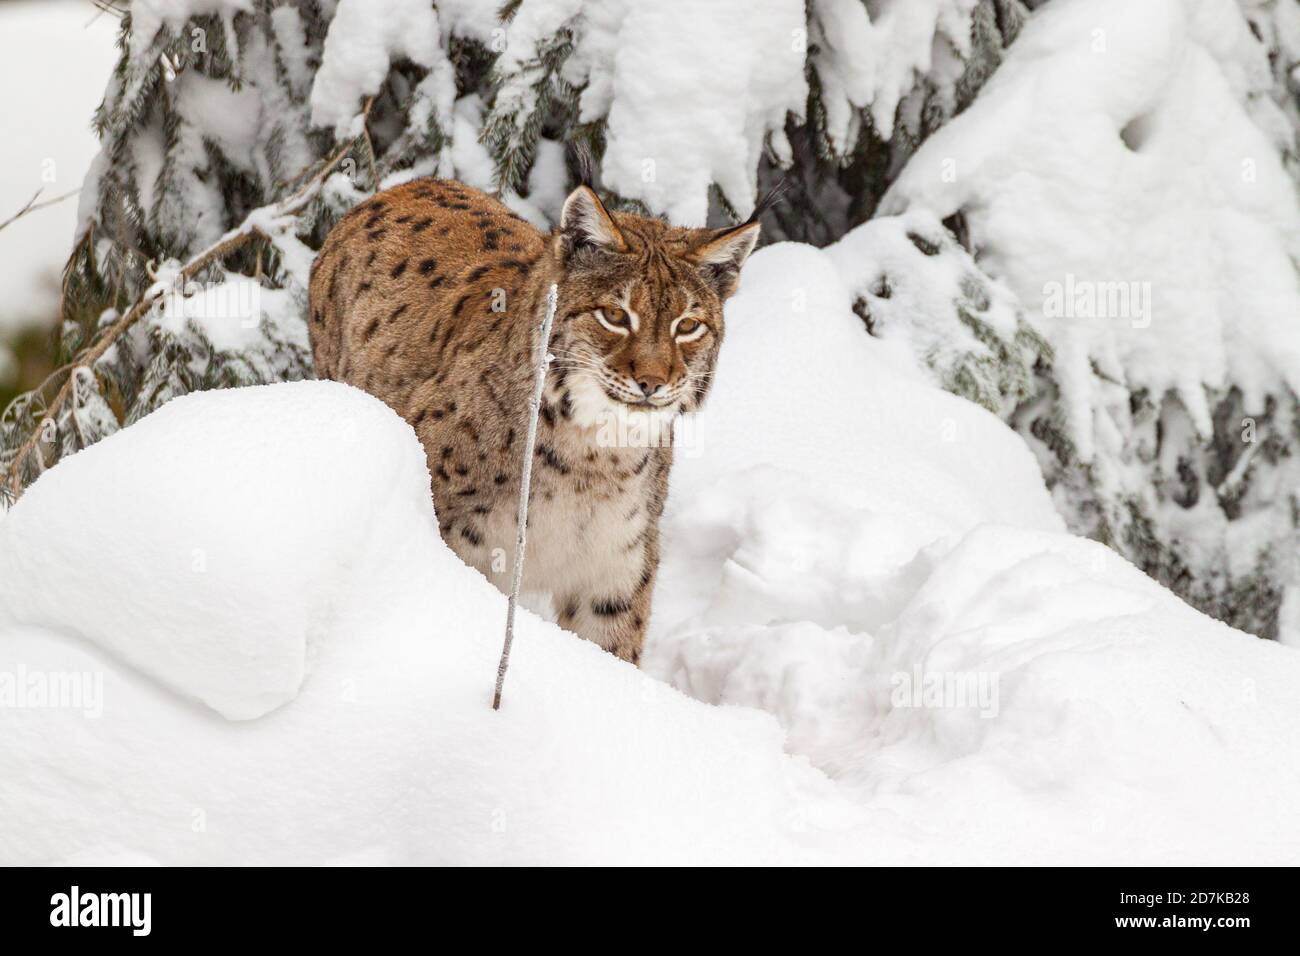 a lynx in the Bayerischer Wald national park in winter Stock Photo